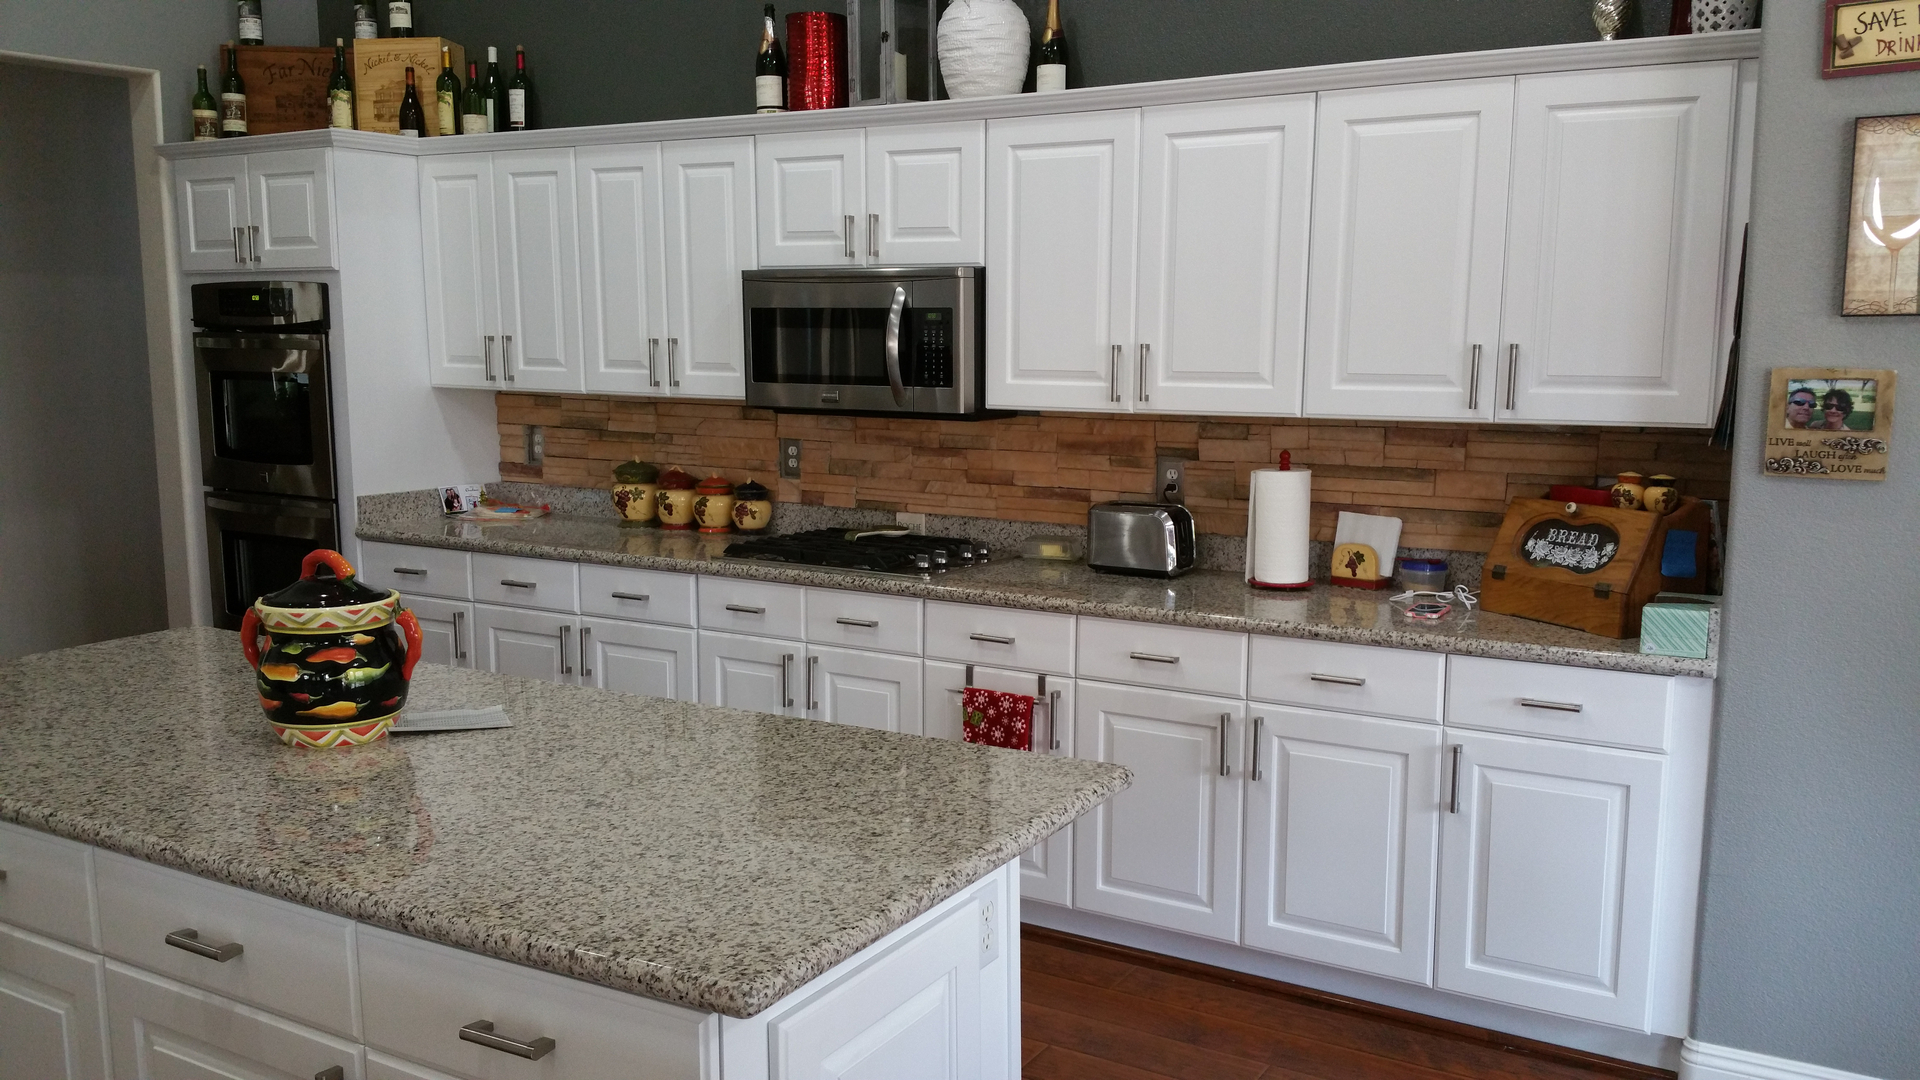 kitchen cabinets, wood finishing - abasta interiors - las vegas, nv